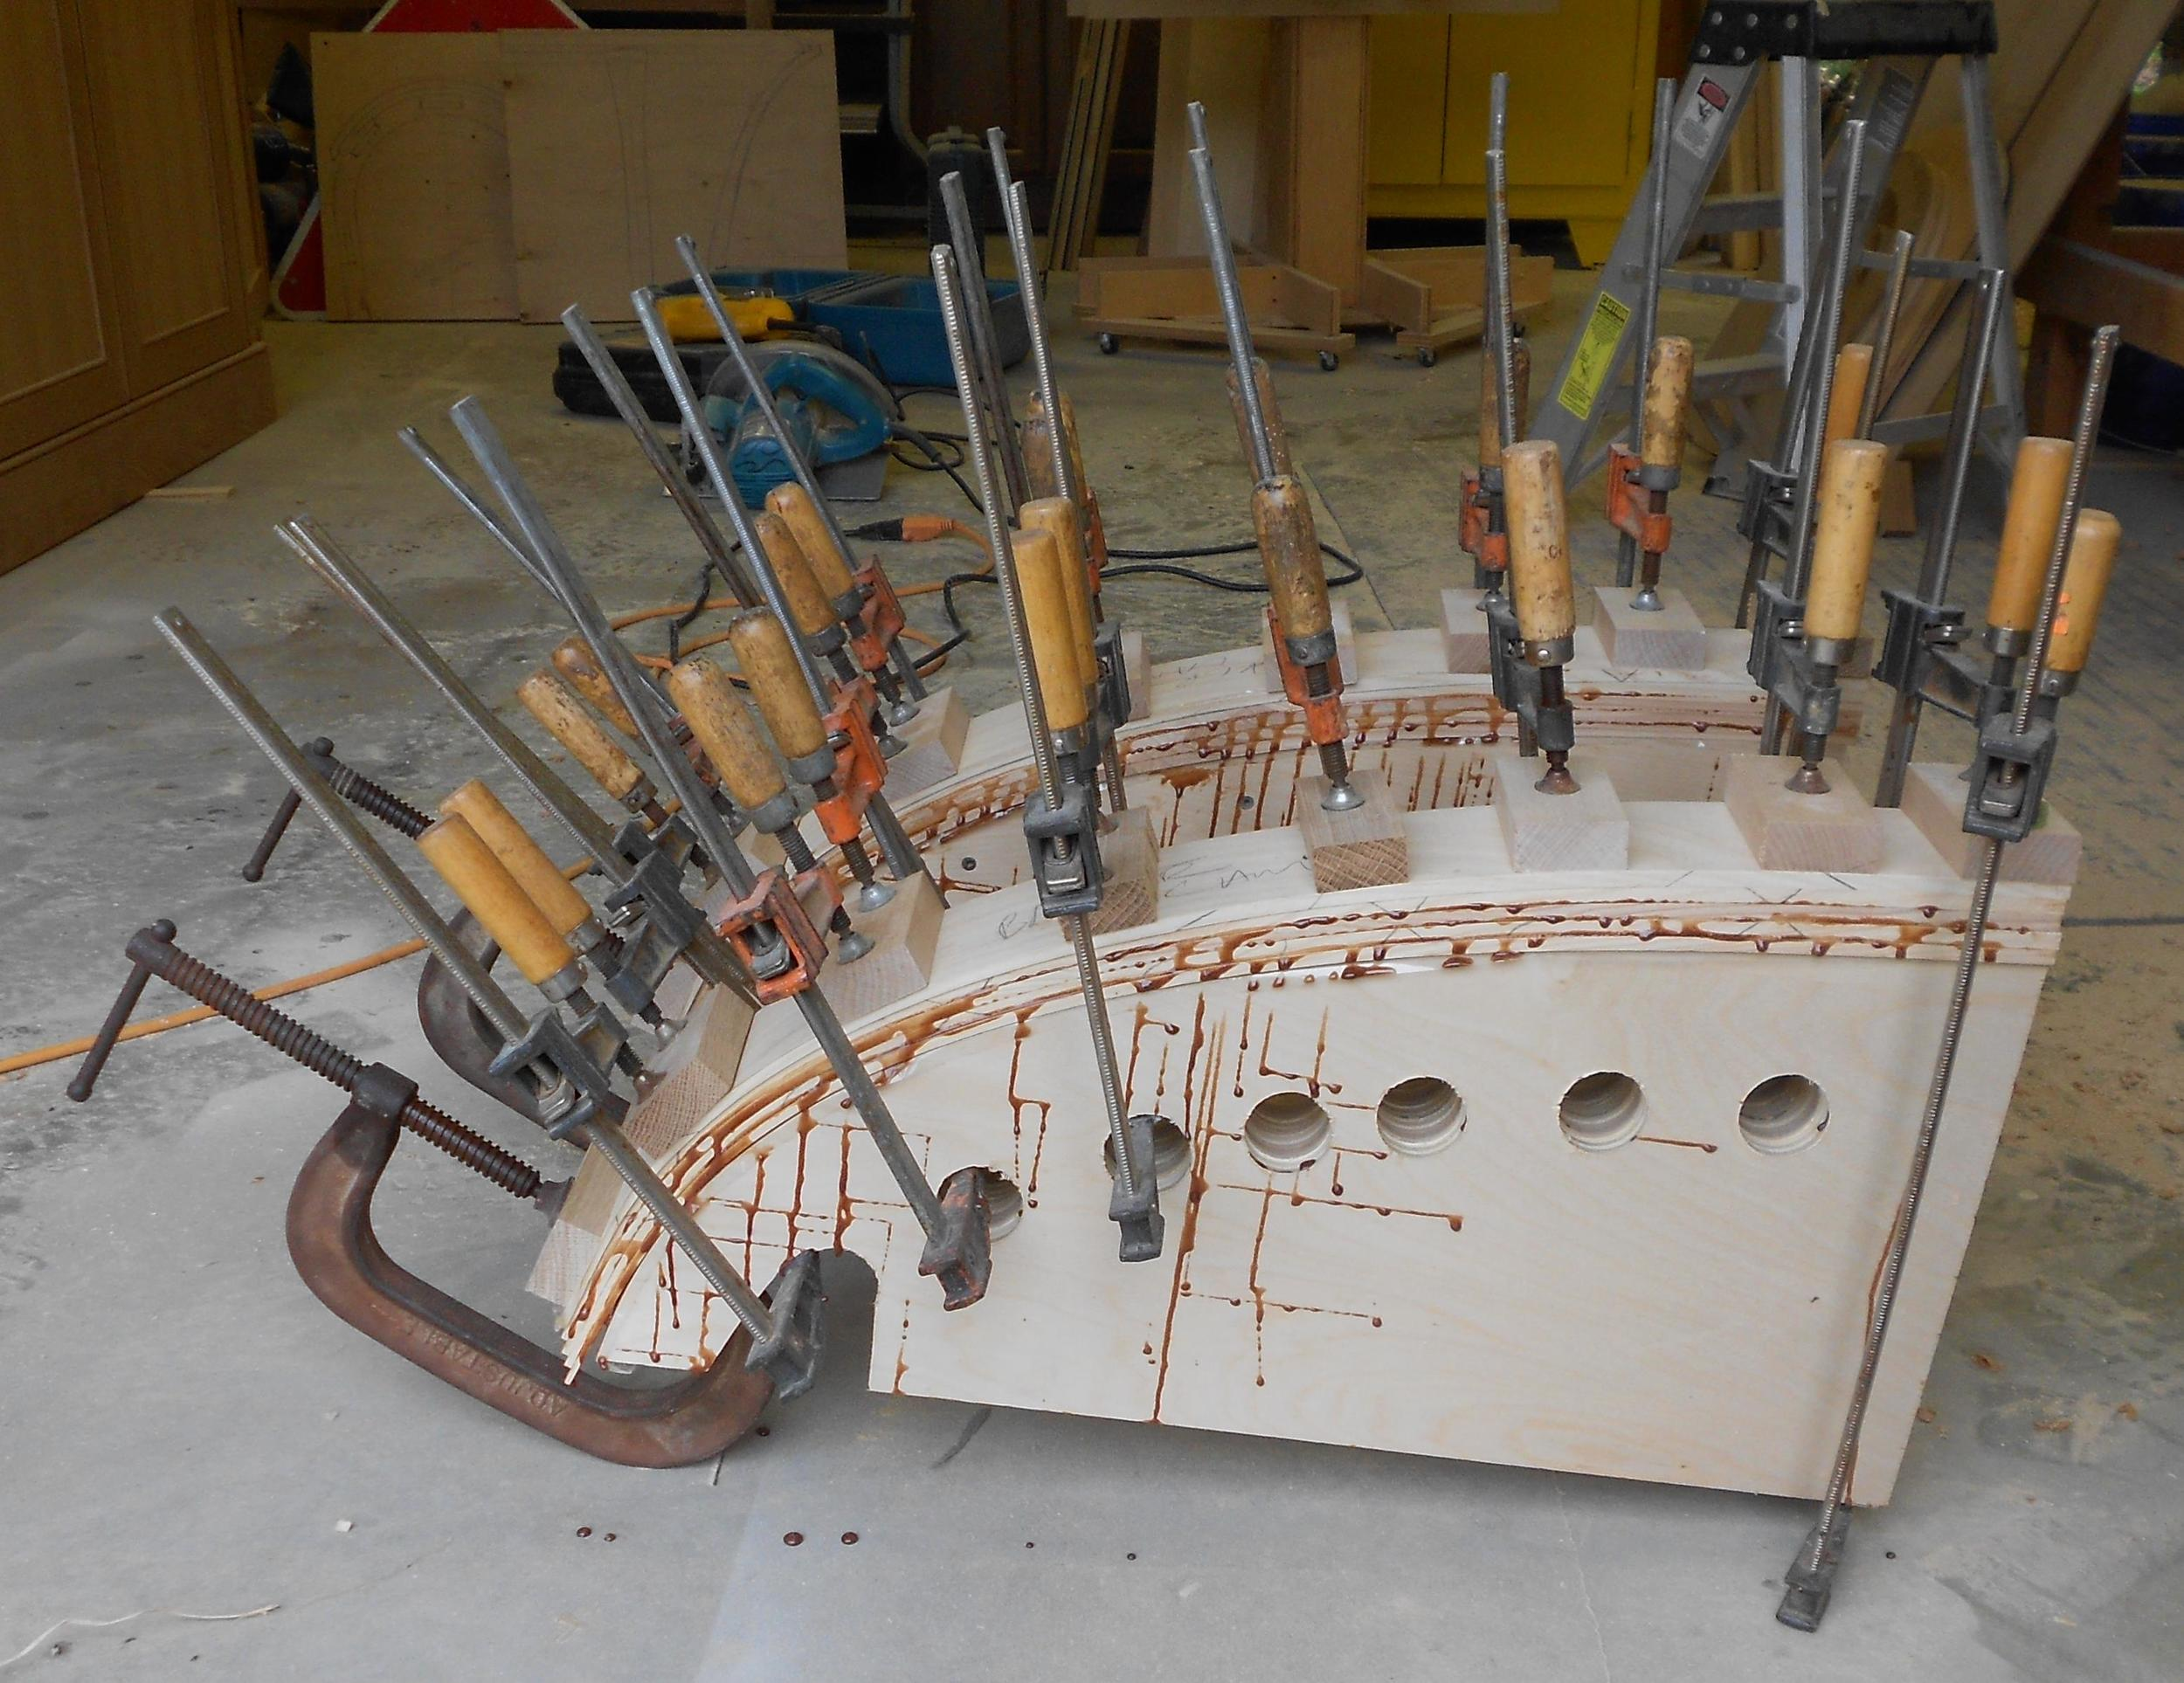 Brockport commission 3 clamped and letting glue cure before removing from jig.jpg